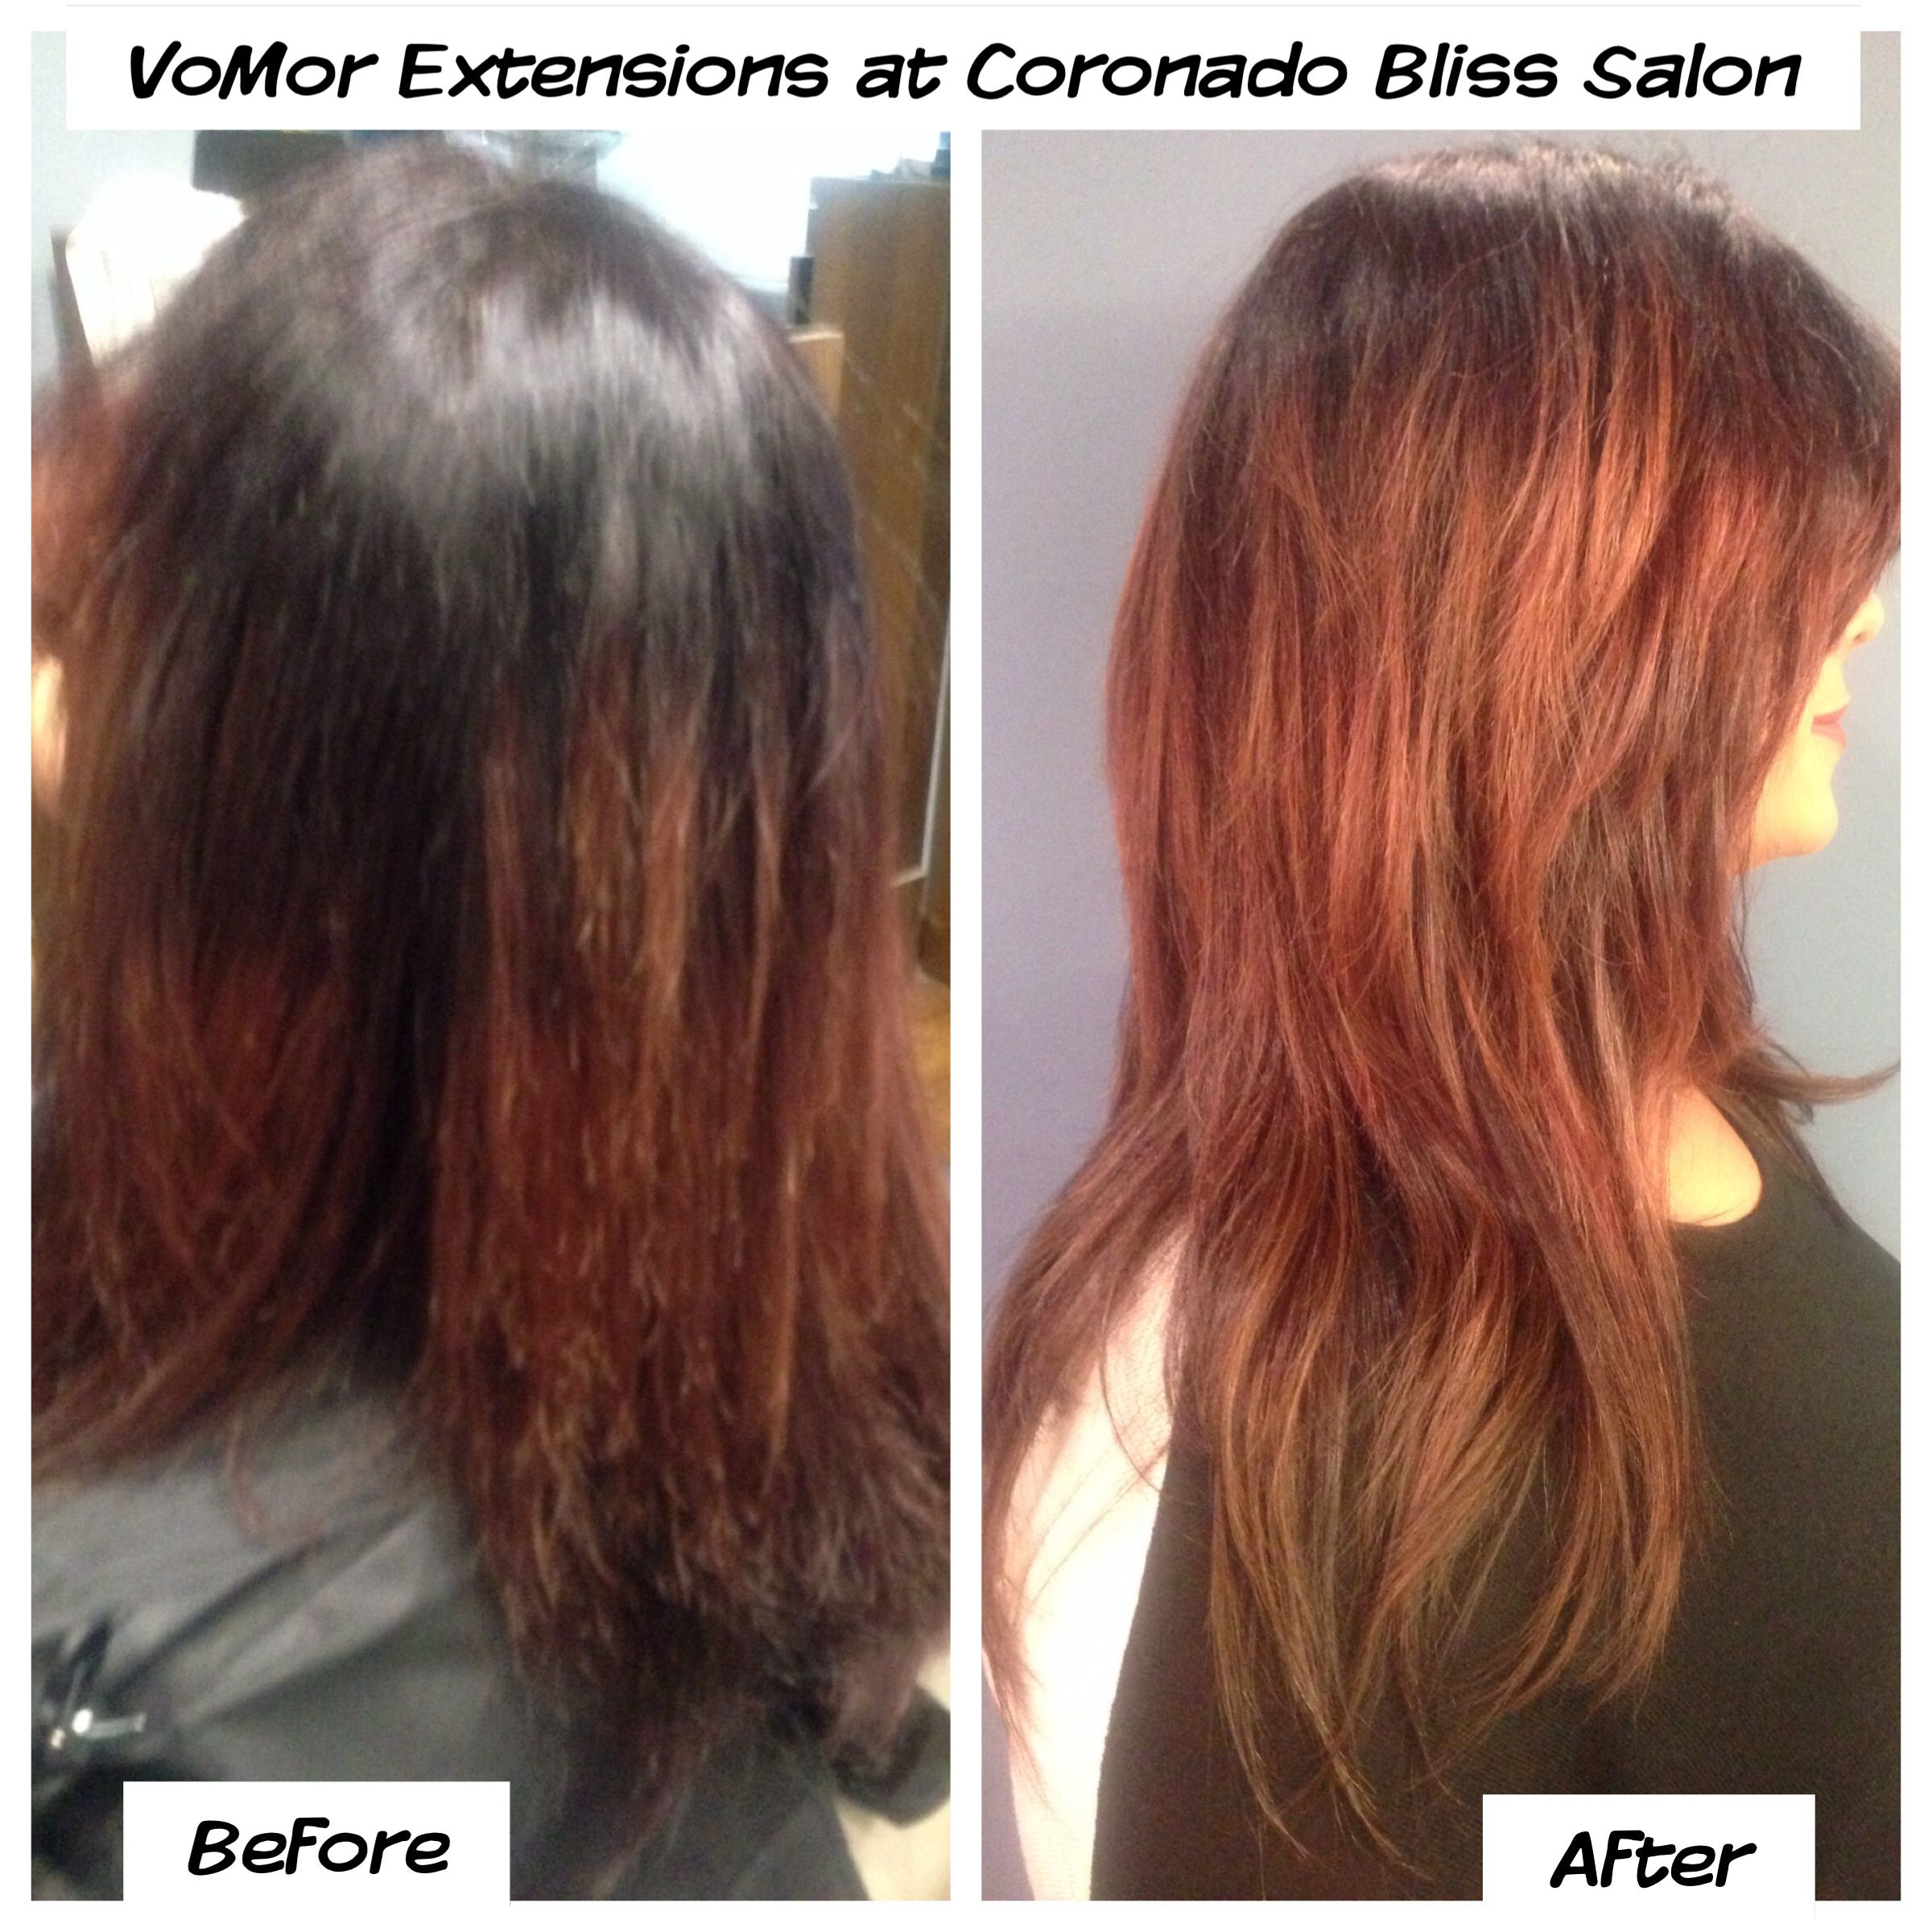 Vomor hair extensions vomor hair extensions pinterest hair